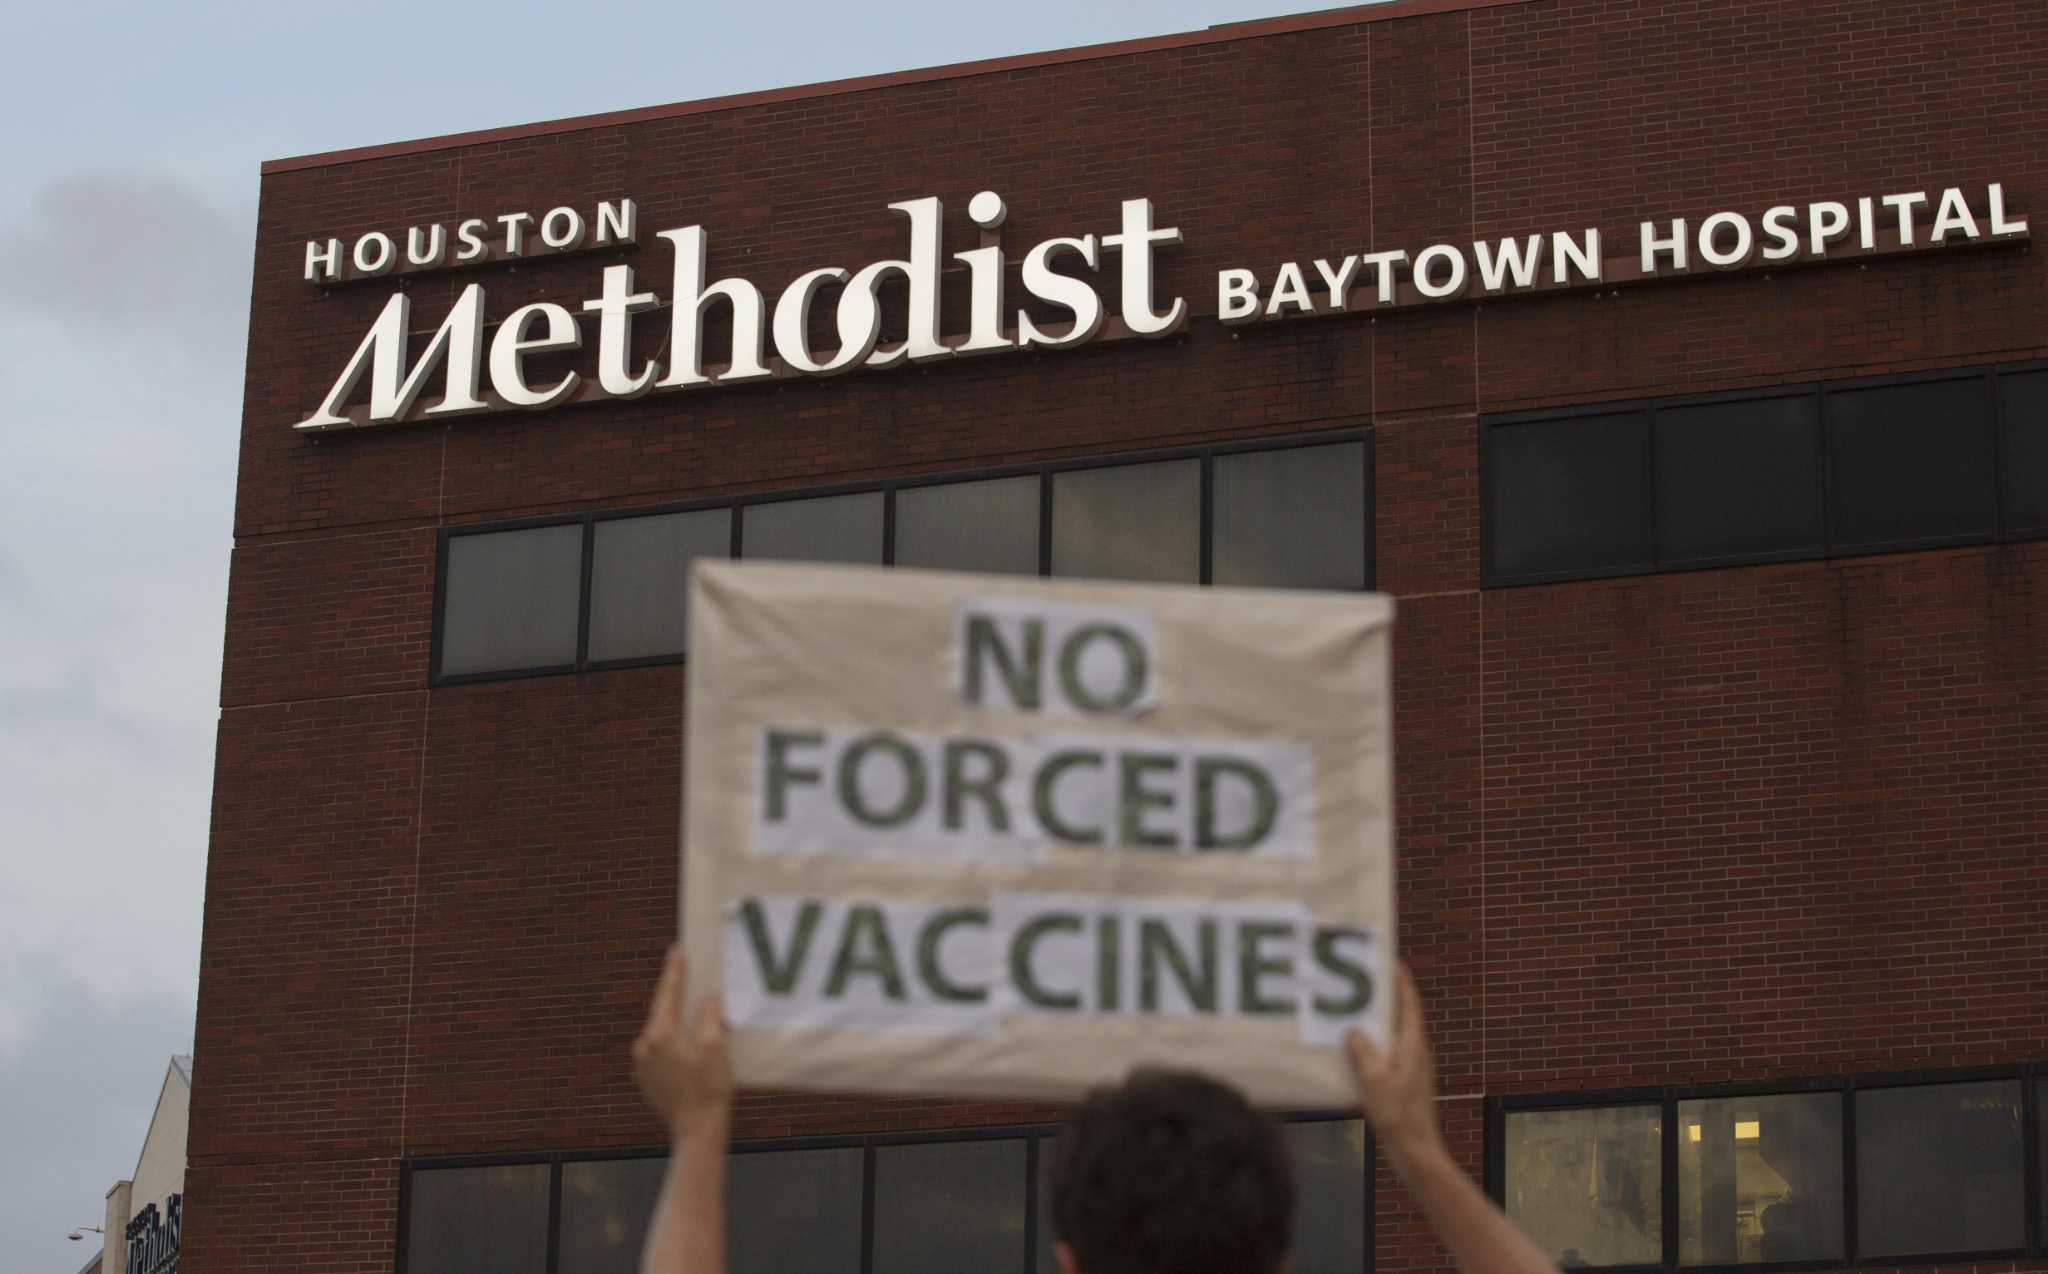 More than 150 Houston Methodist employees resign or are fired over COVID vaccine mandate